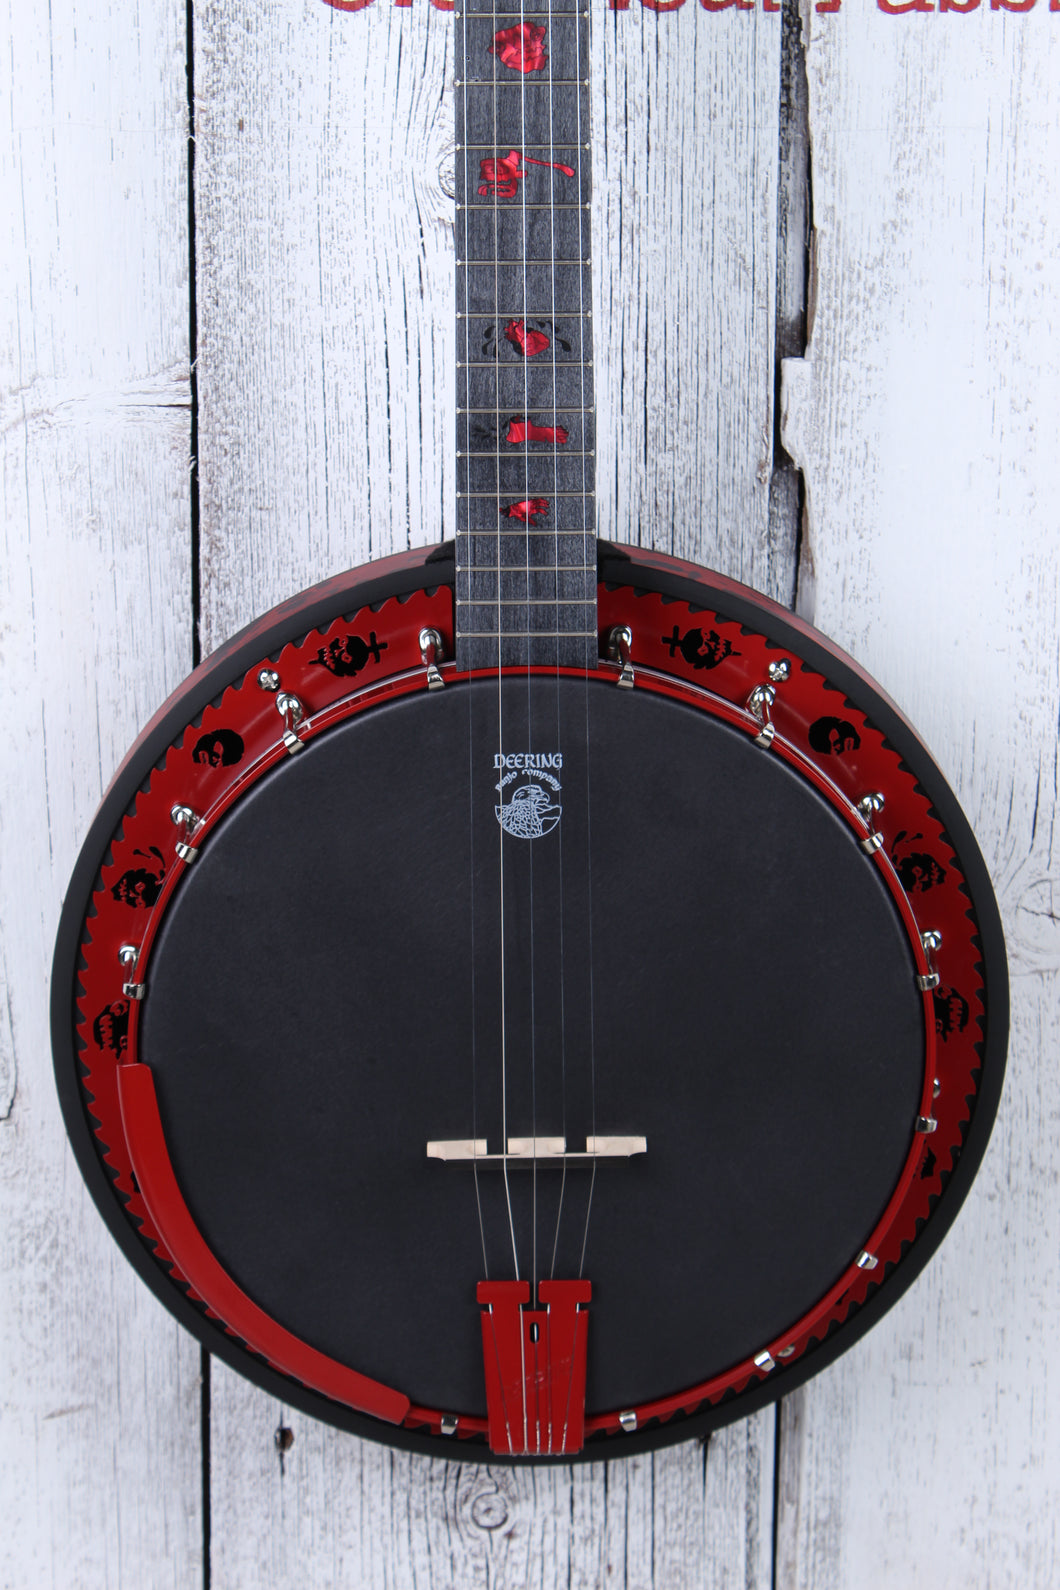 Deering Limited Edition Goodtime Zombie Killer II 5 String Resonator Banjo